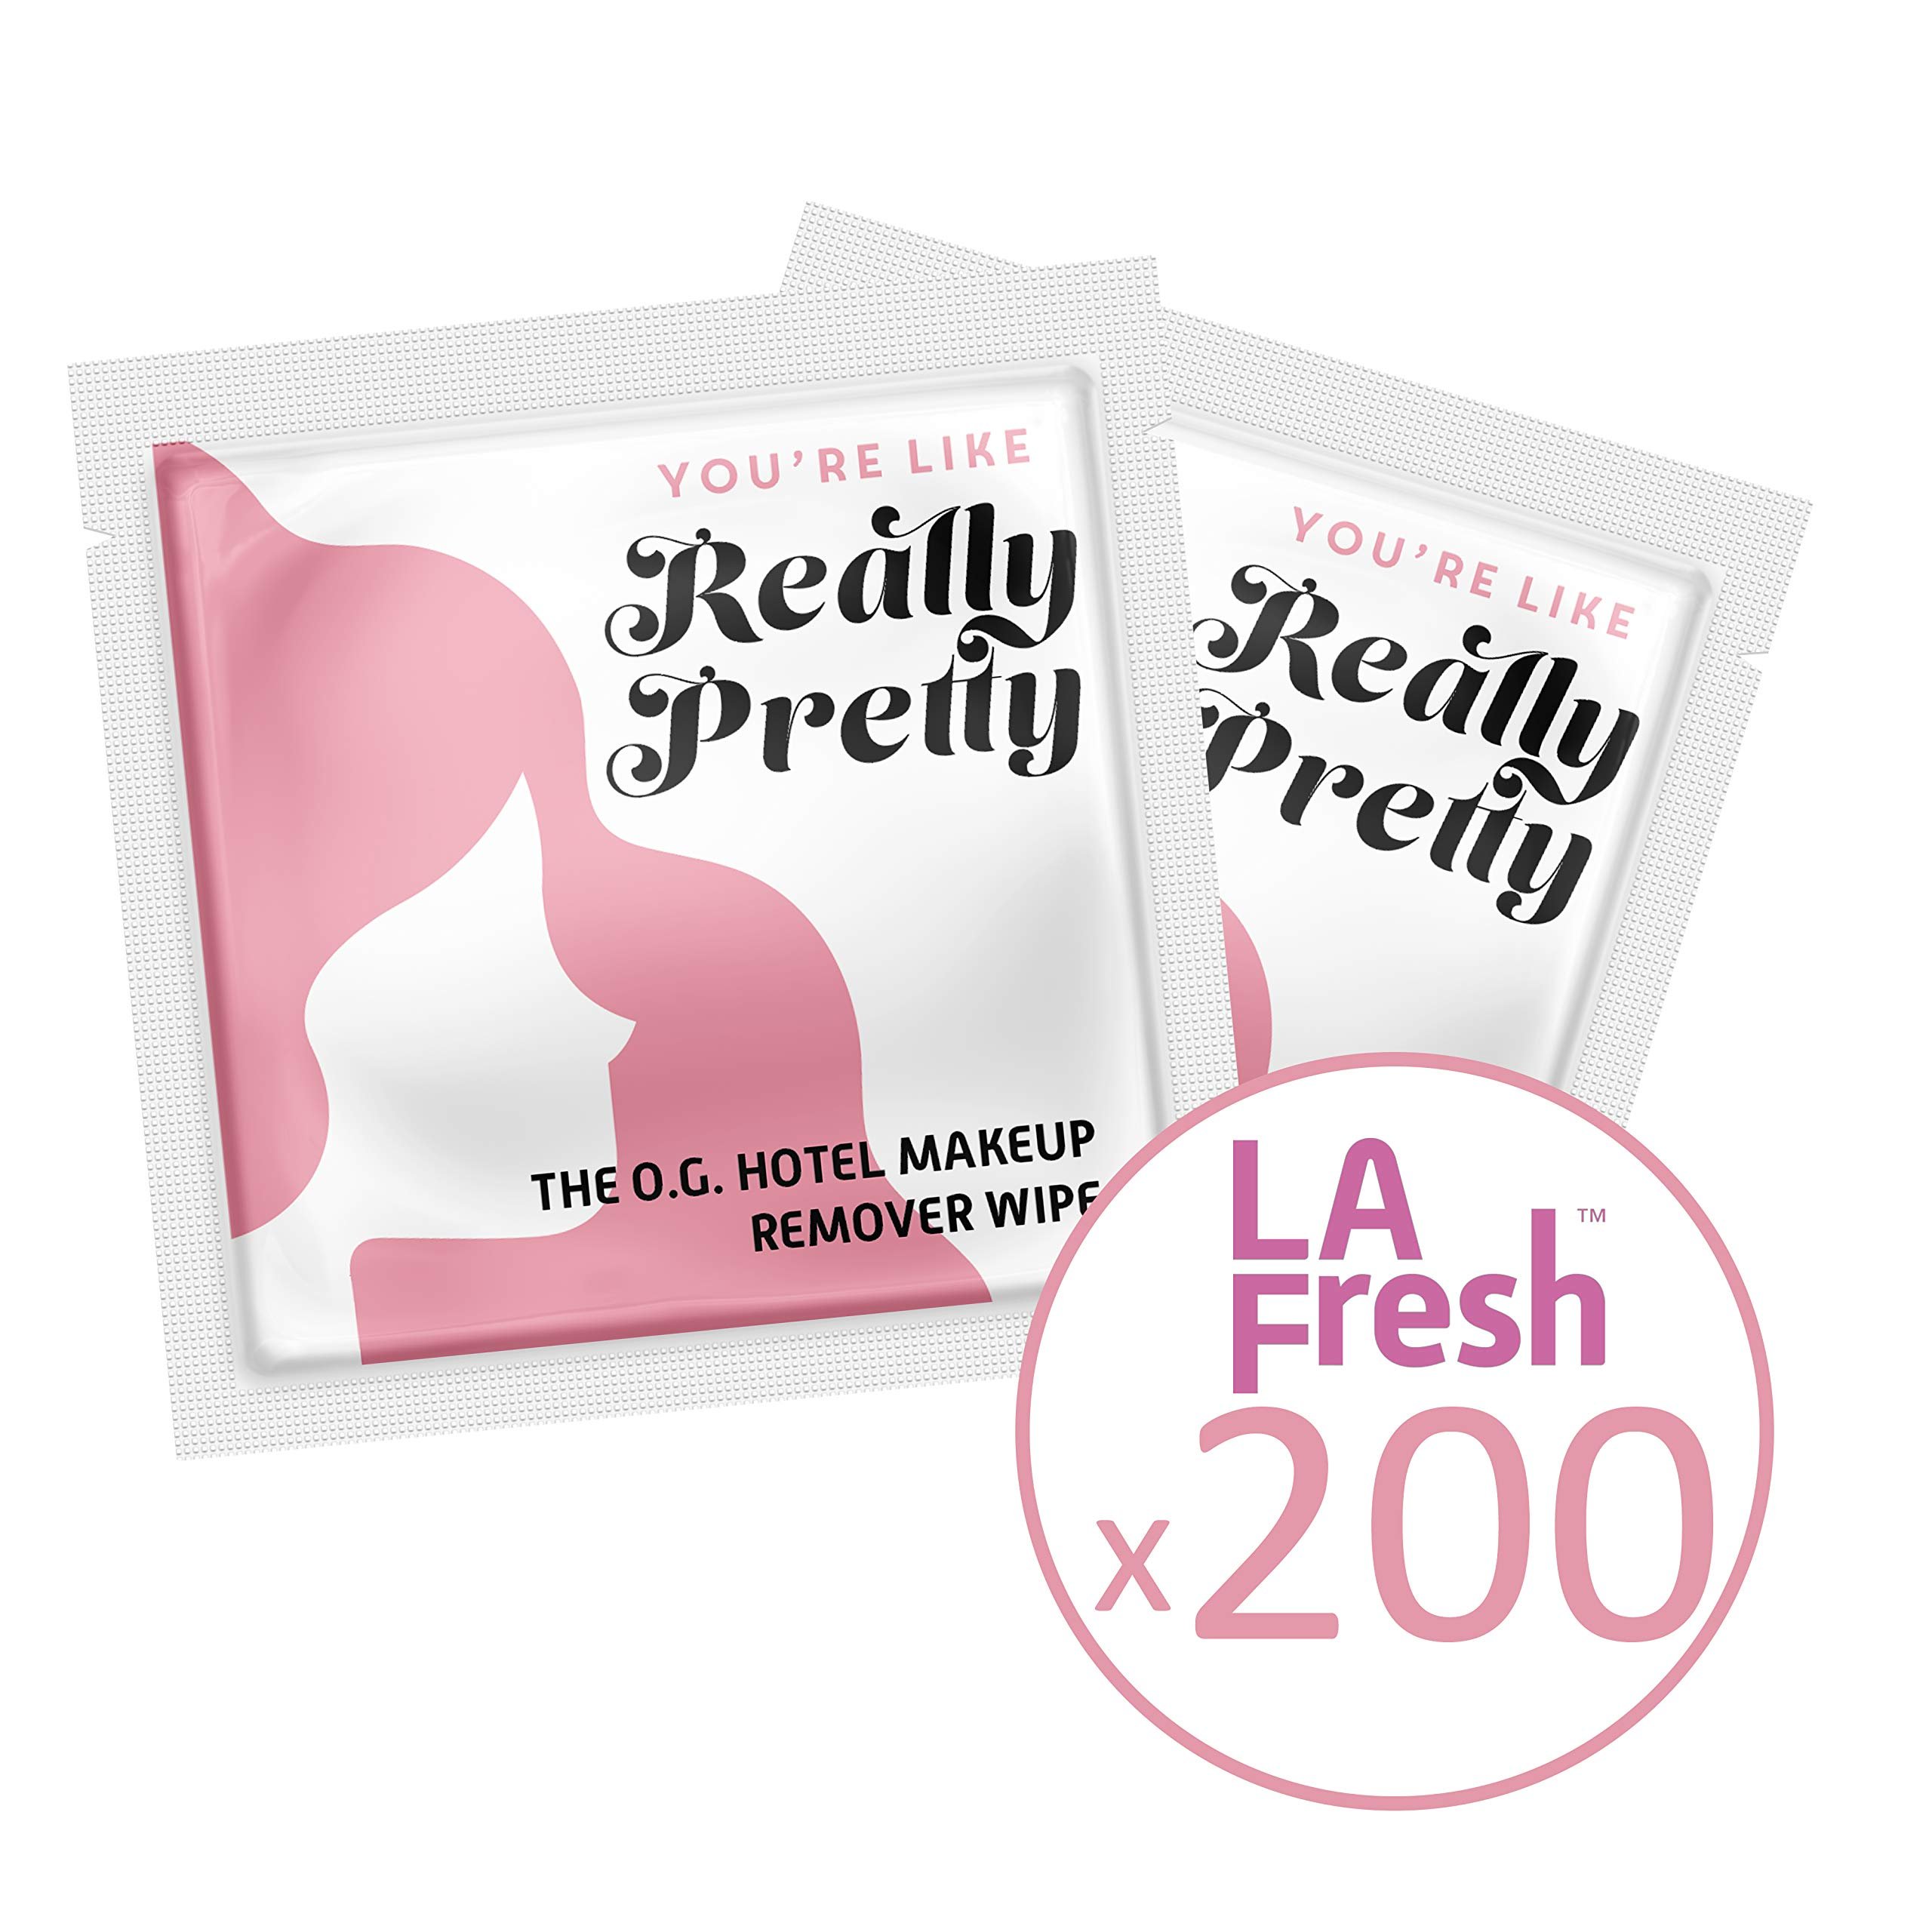 La Fresh Travel Lite Makeup Remover Cleansing Travel Wipes - Natural, Biodegradable, Waterproof, Facial Towelettes With Vitamin E - Individually Wrapped & Sealed (Pack of 200) by La Fresh (Image #1)